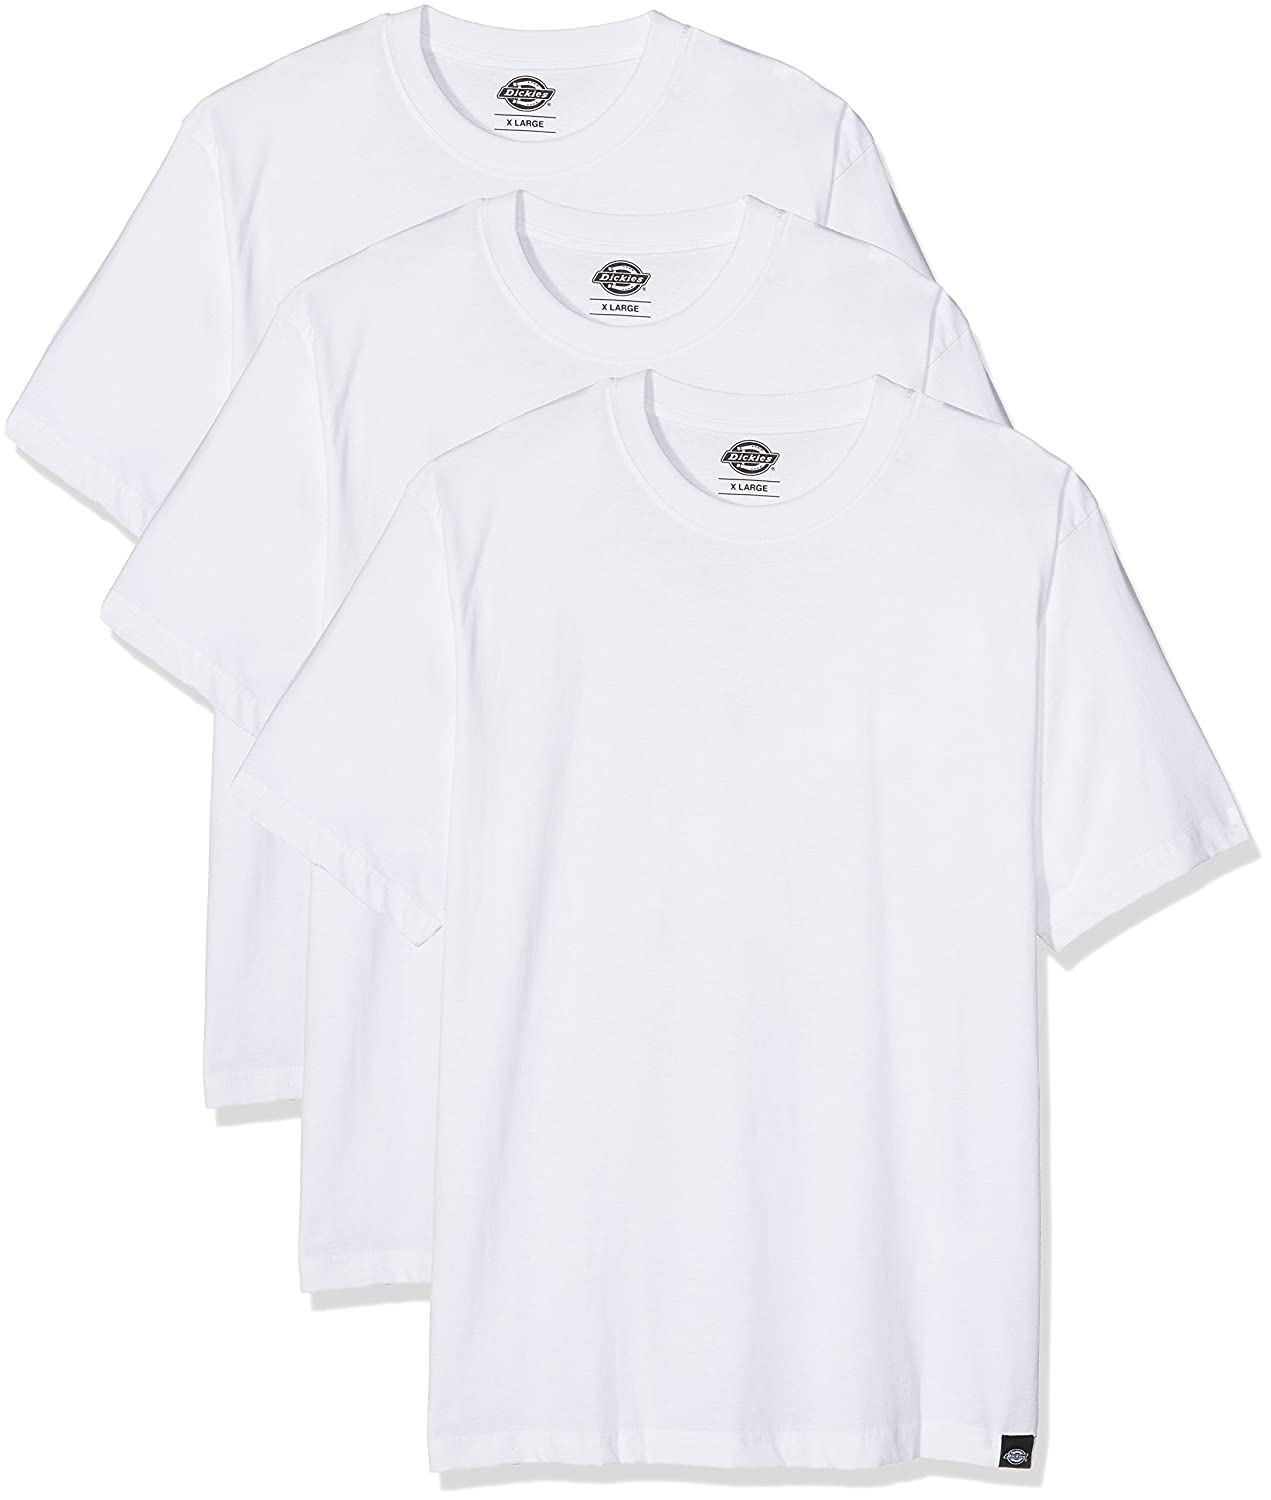 armani t shirts online shopping